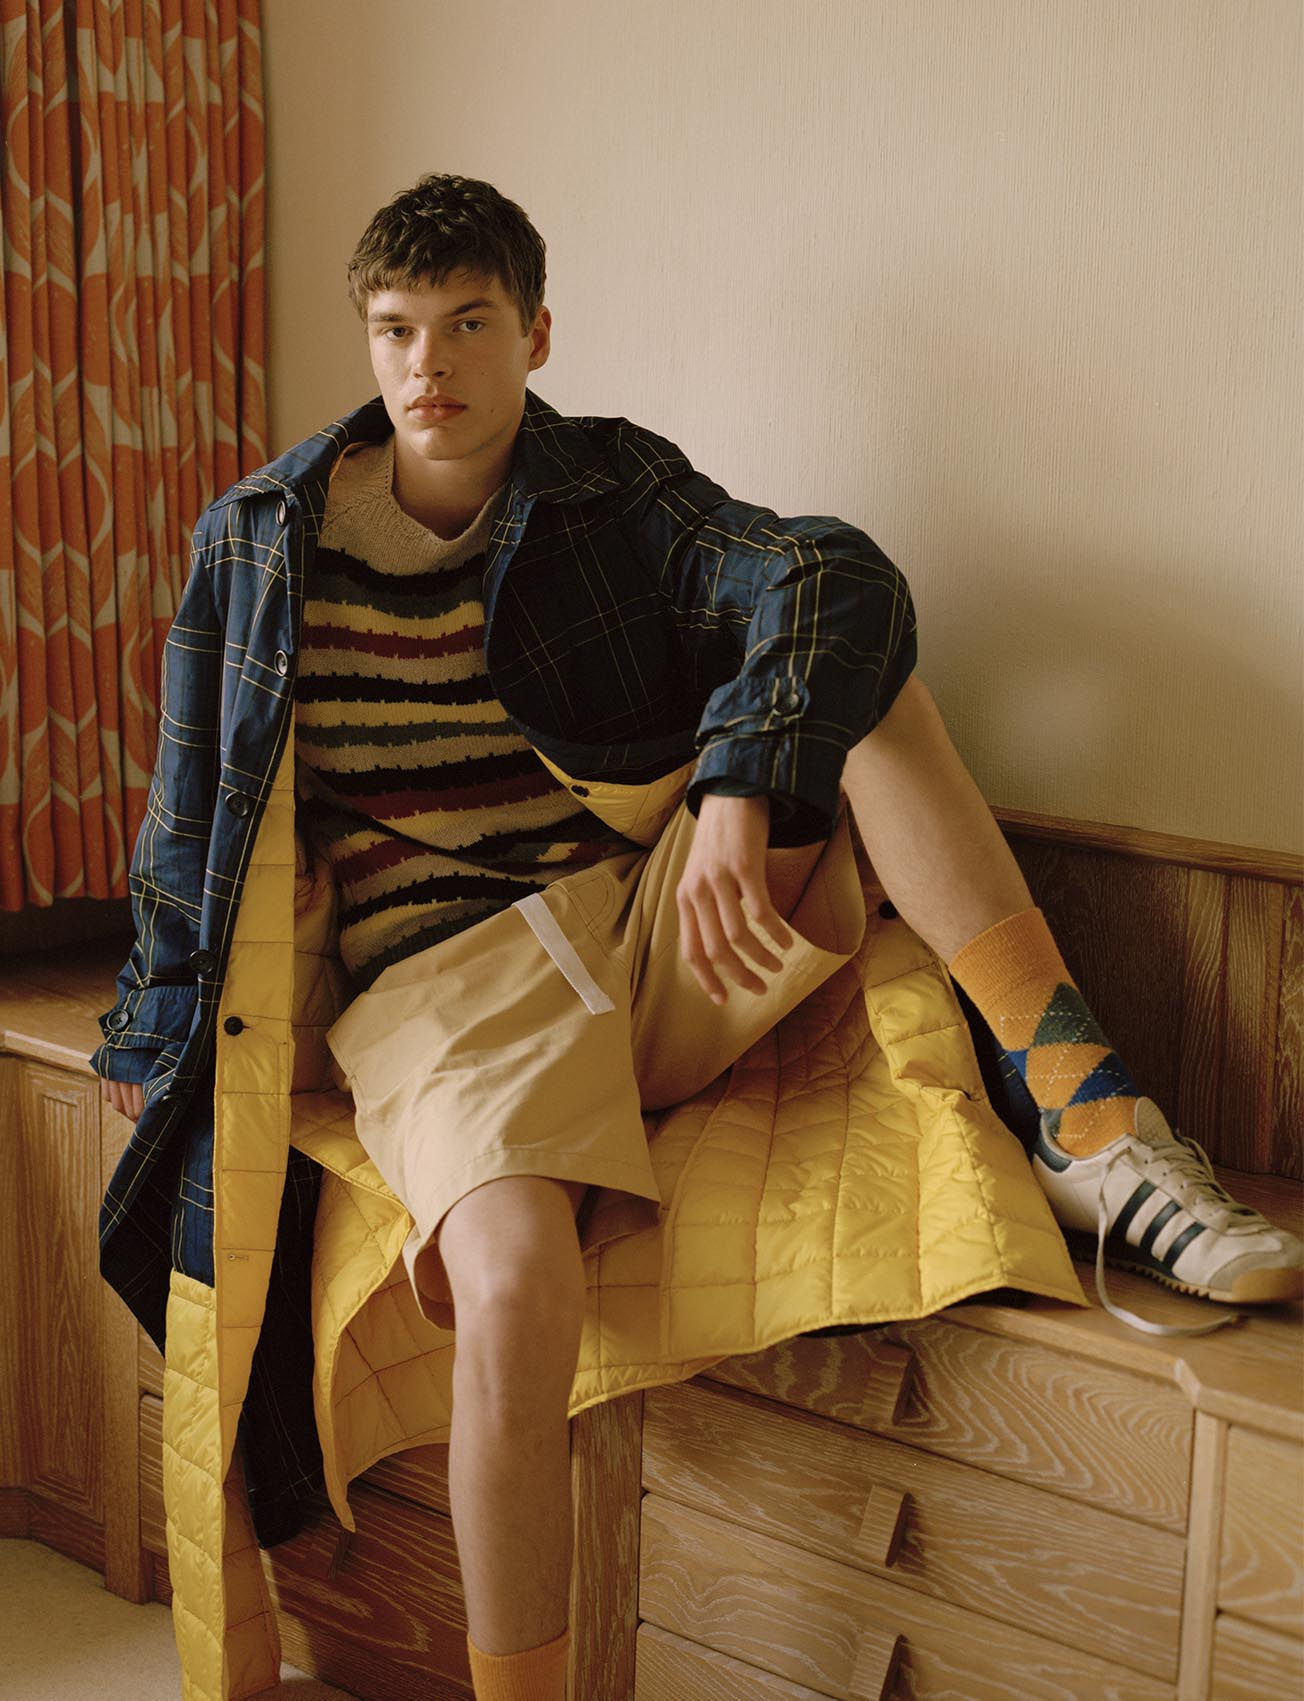 coming-of-age-19-marblemagazine.jpg